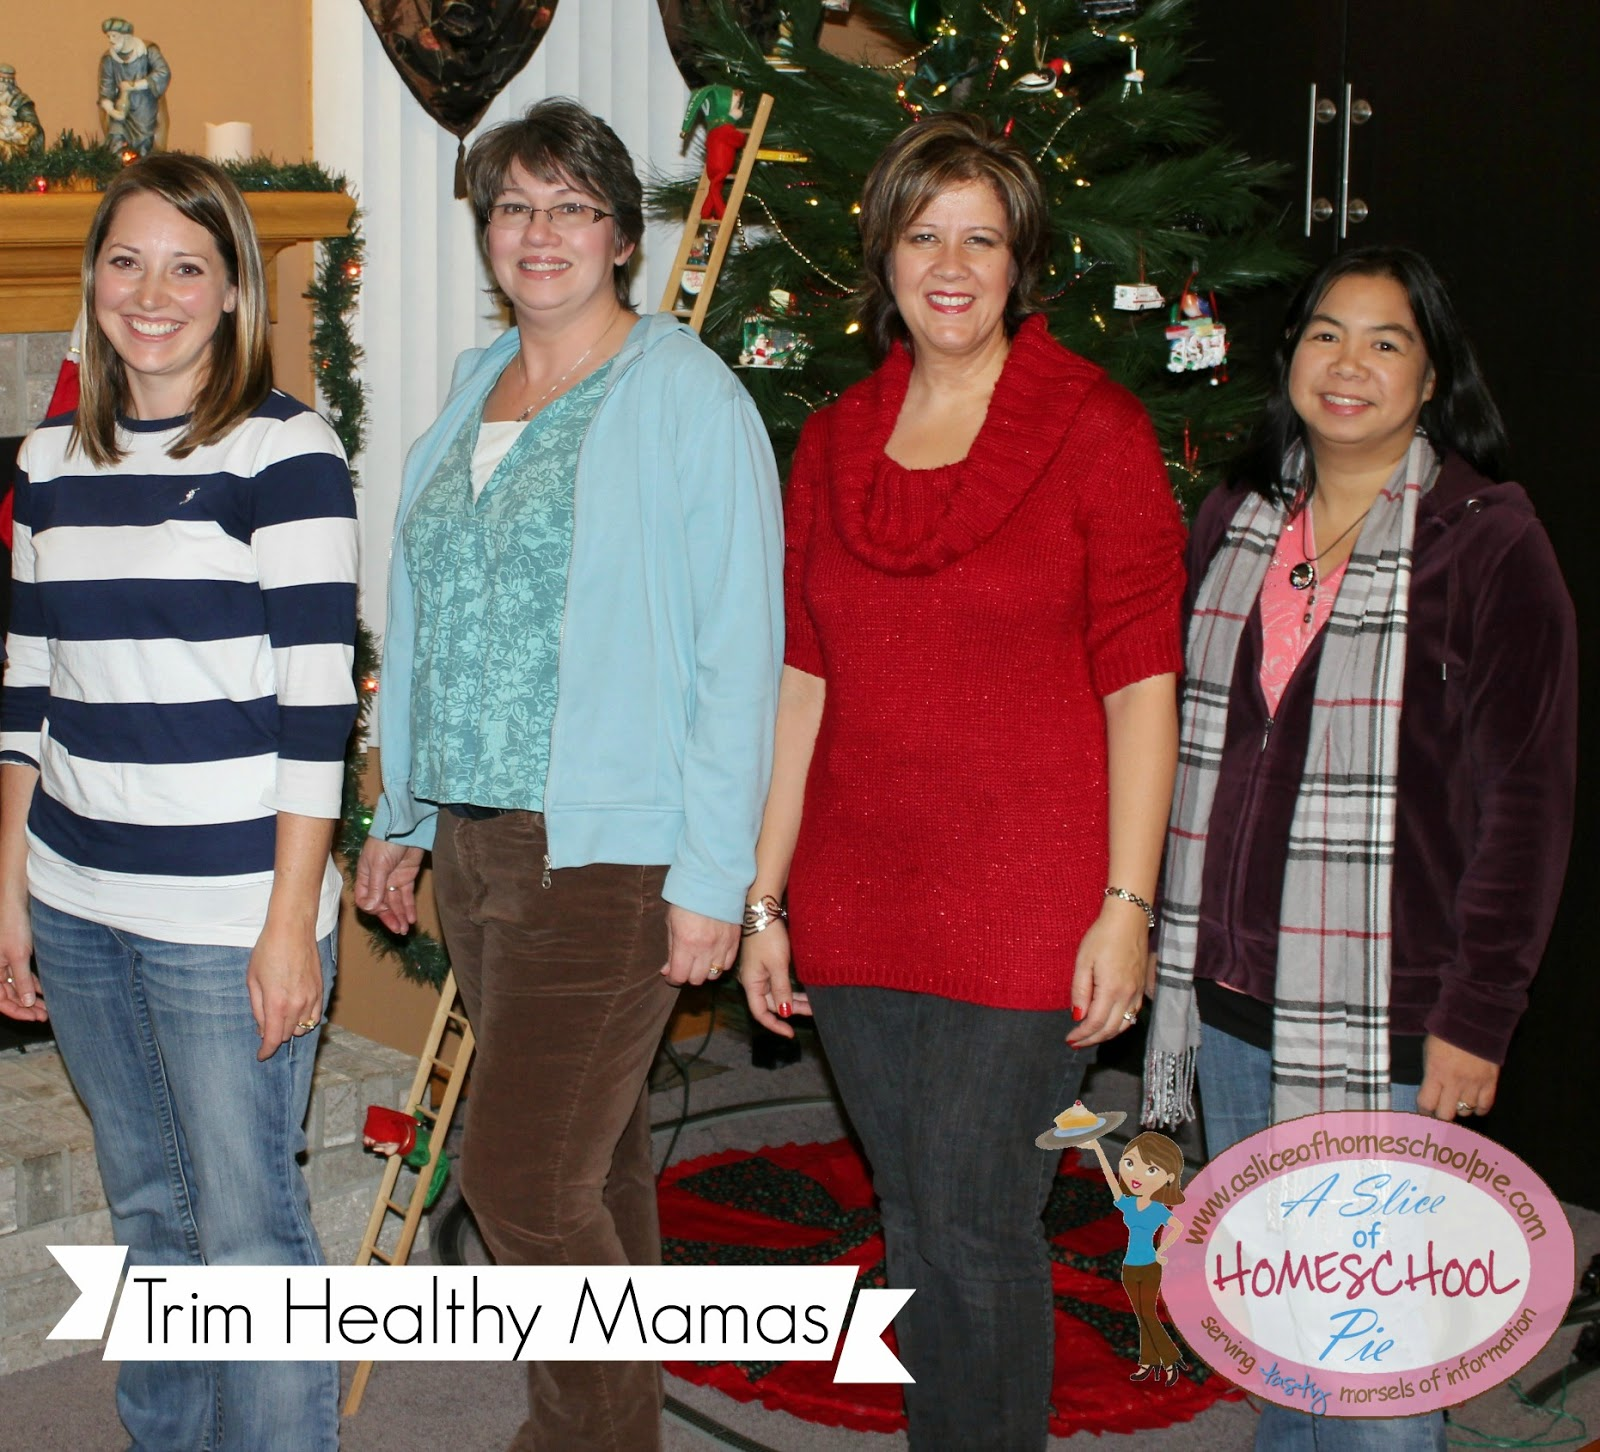 Trim Healthy Mama Support Group #TrimHealthyMama #weightloss